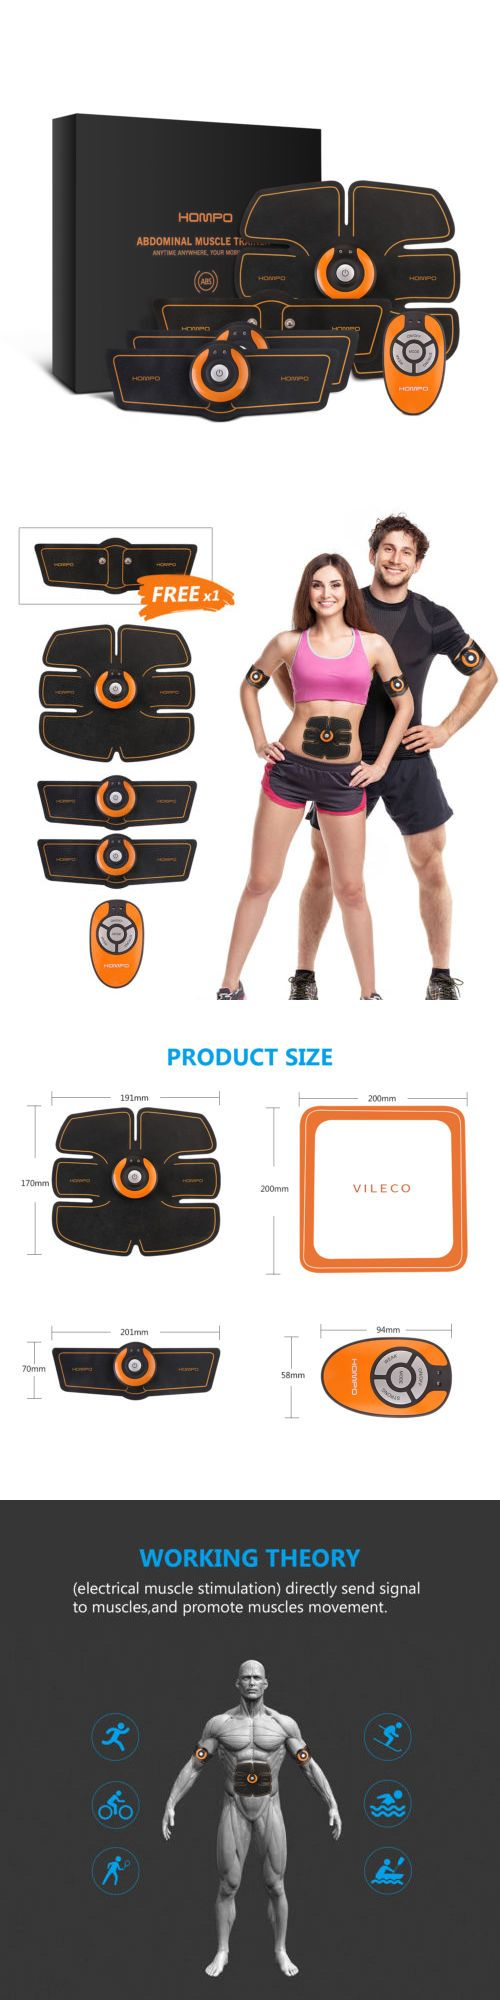 199228ed85dd6 Abdominal Exercisers 15274  Magic Ems Muscle Training Gear Abs Trainer Fit  Body Home Exercise Shape Fitness -  BUY IT NOW ONLY   26.98 on eBay!